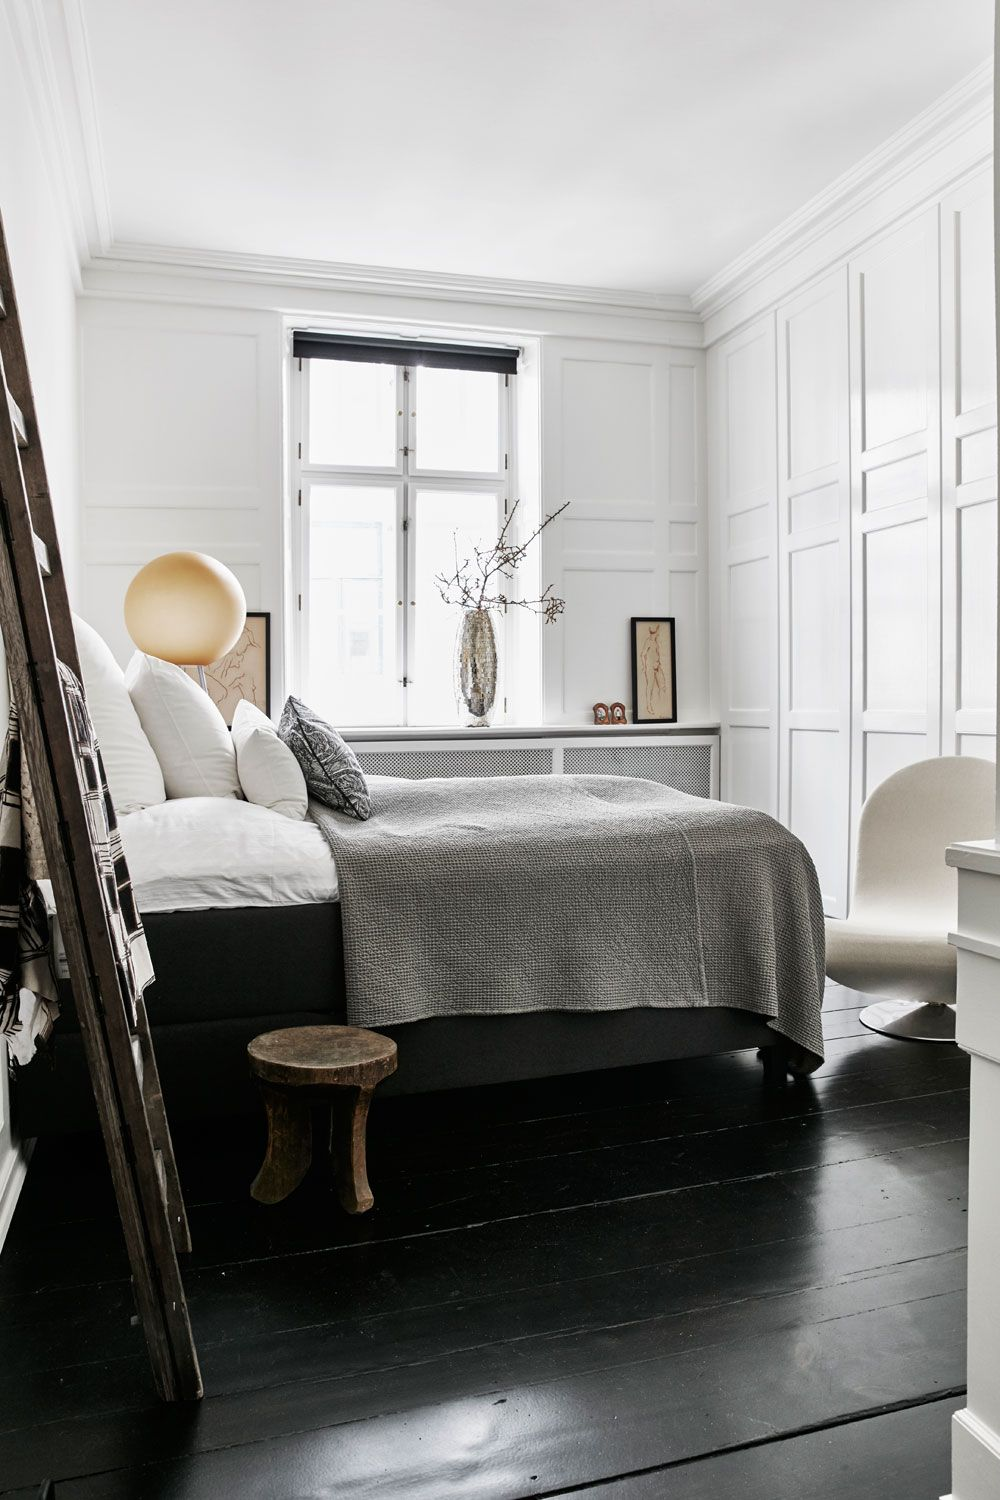 Fresh Stool at End Of Bed